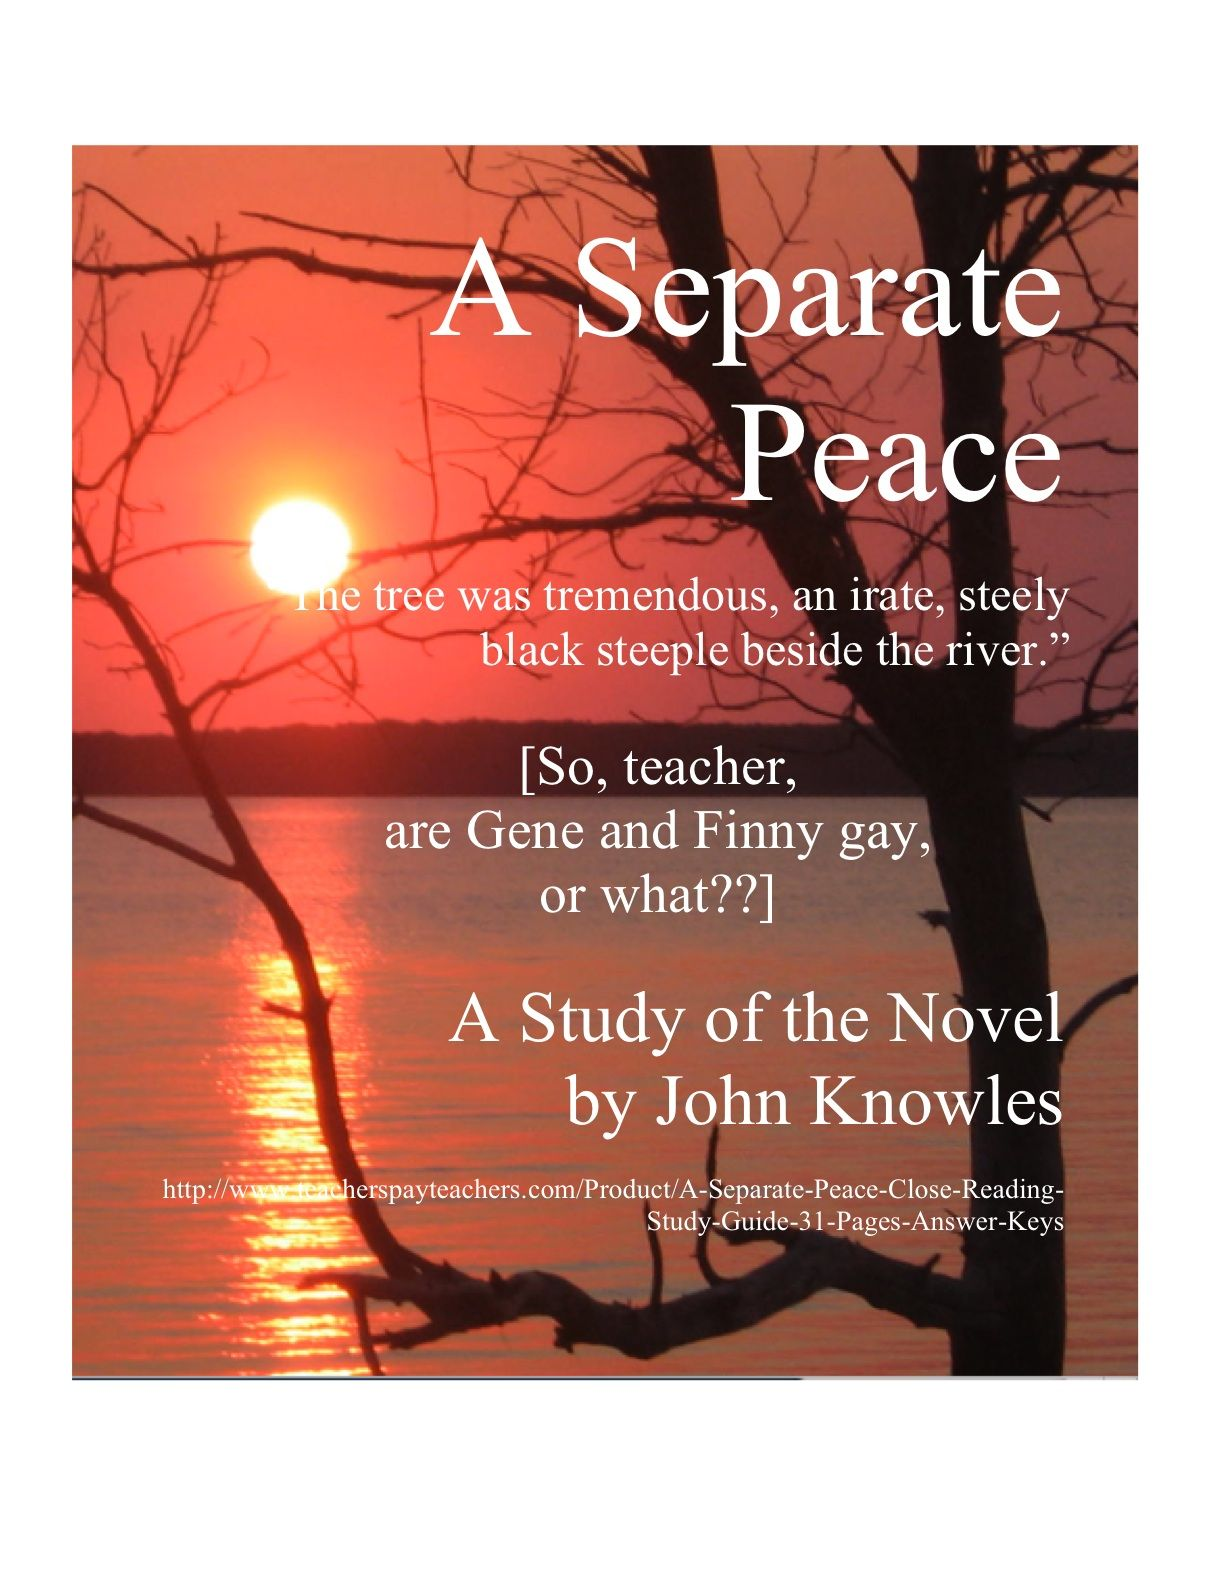 how many pages are in a separate peace